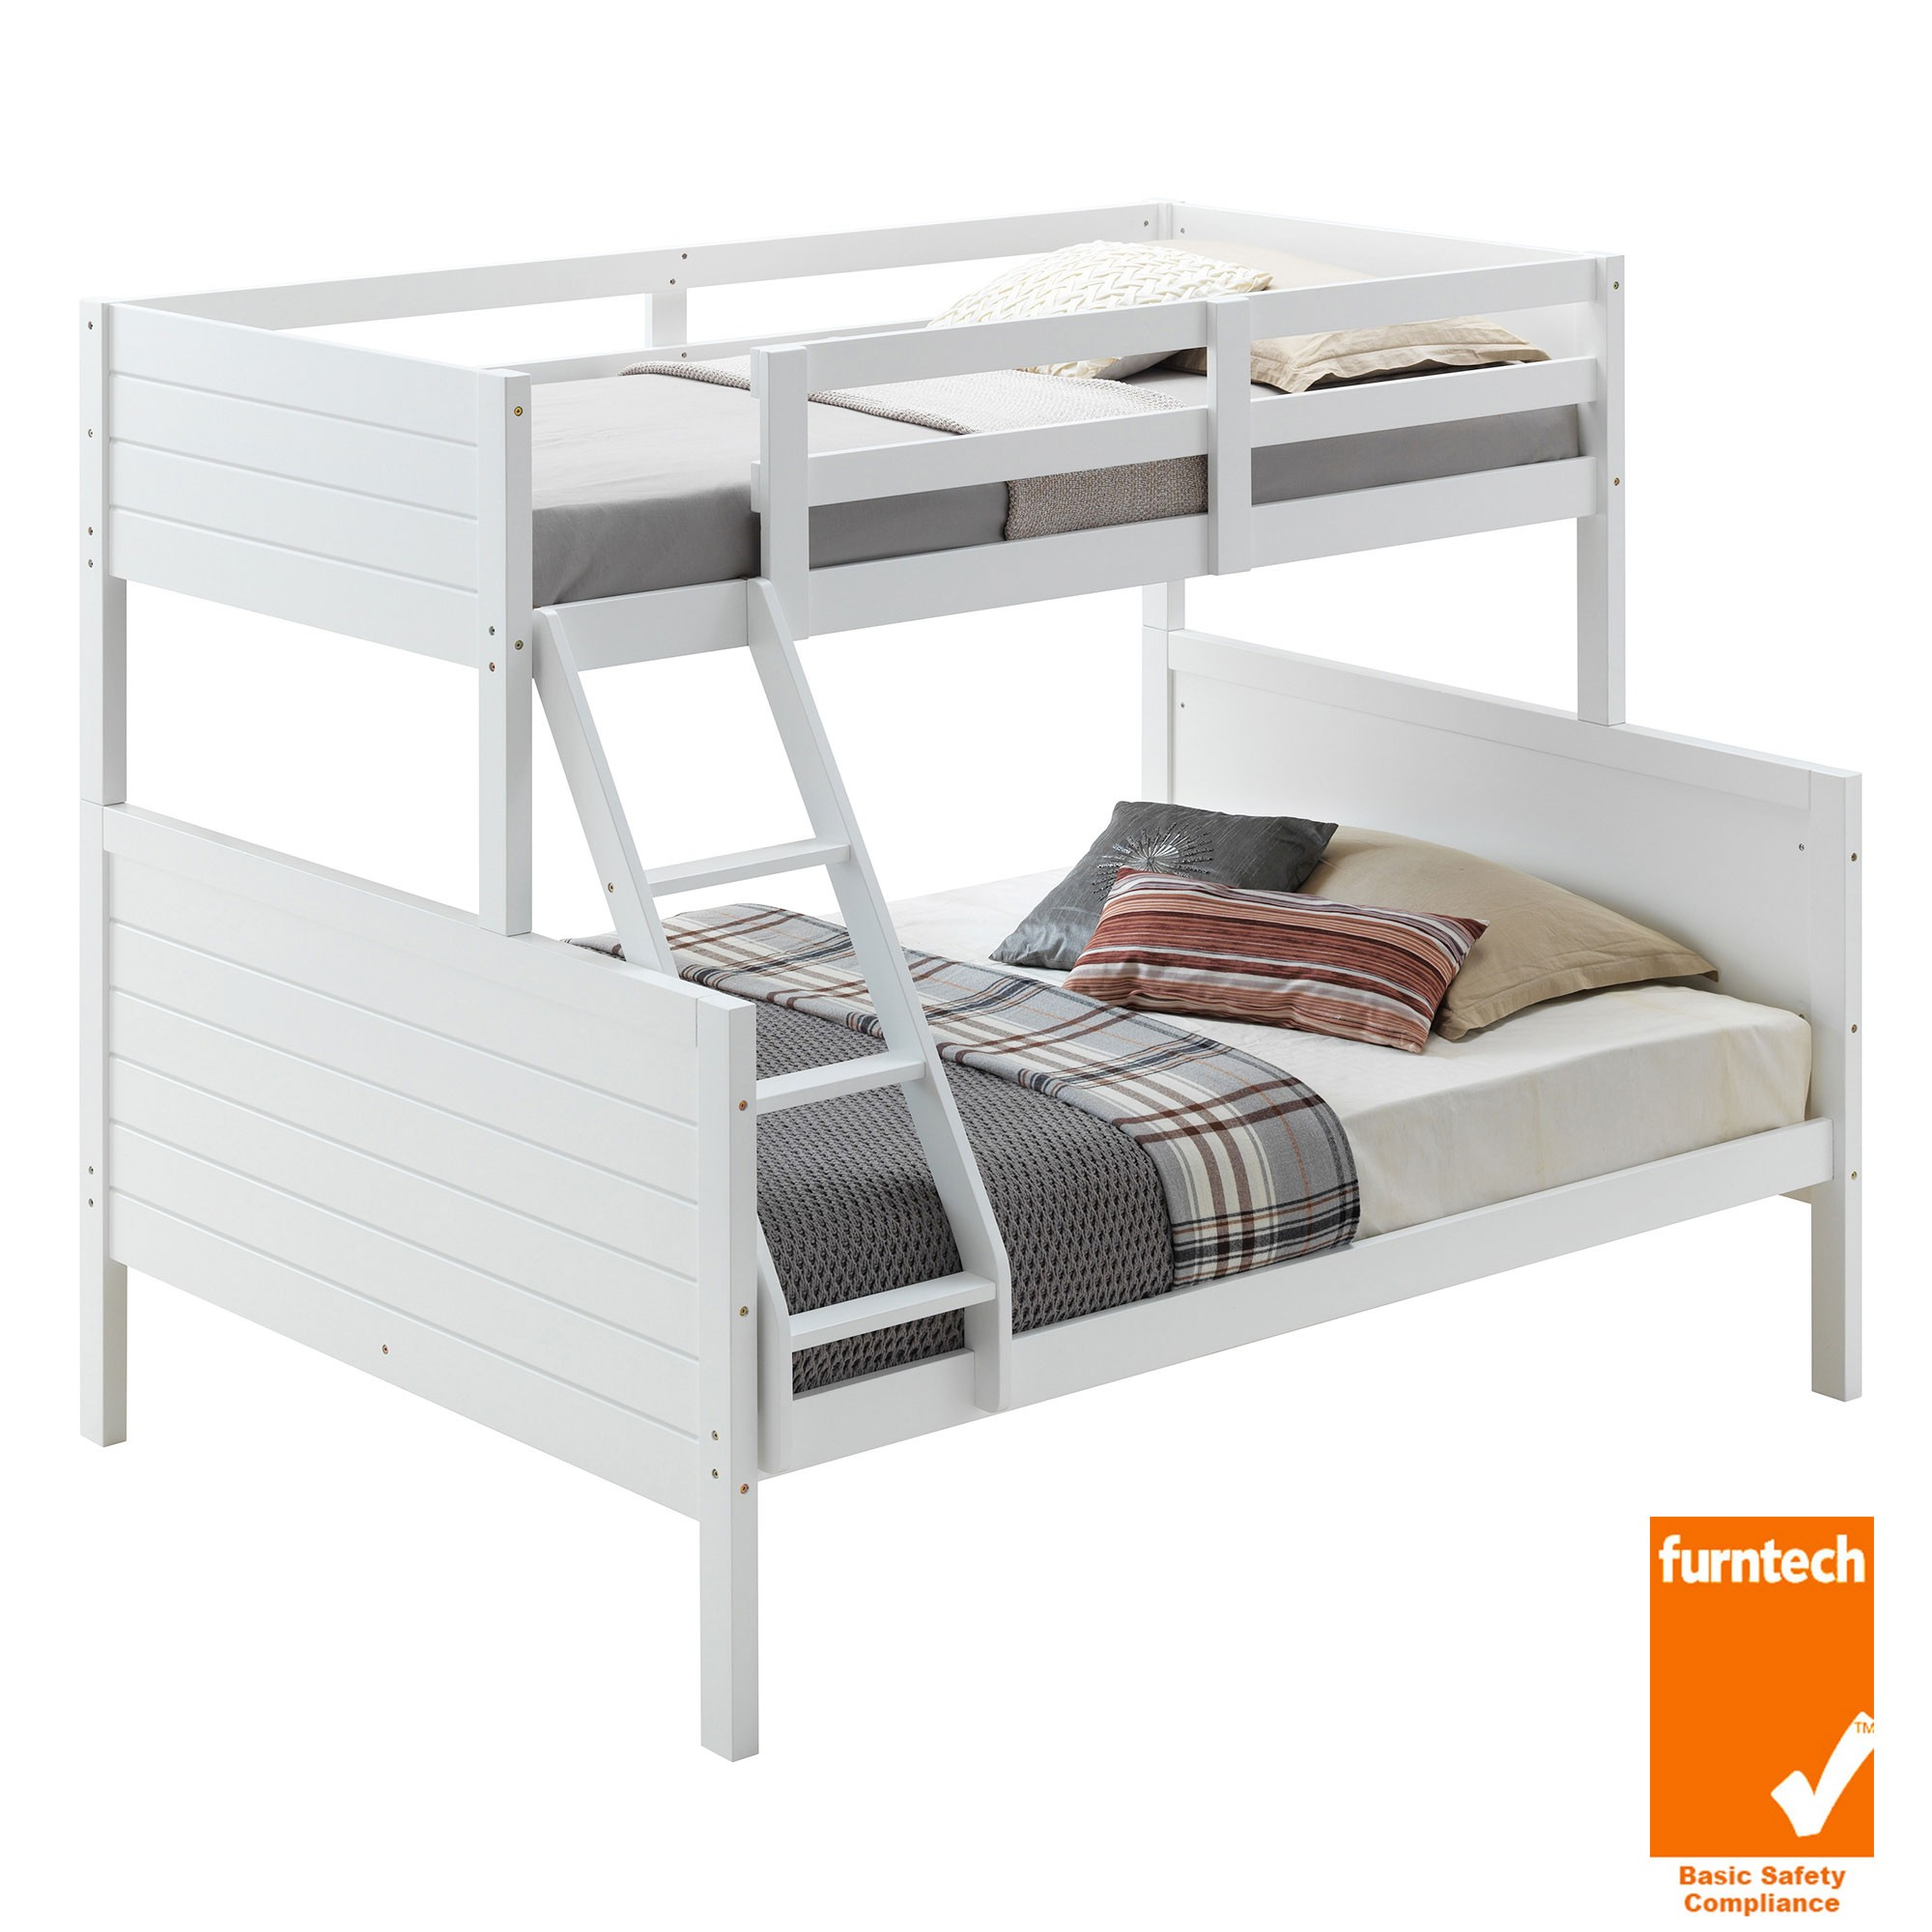 Welling Wooden Bunk Bed, Trio, White